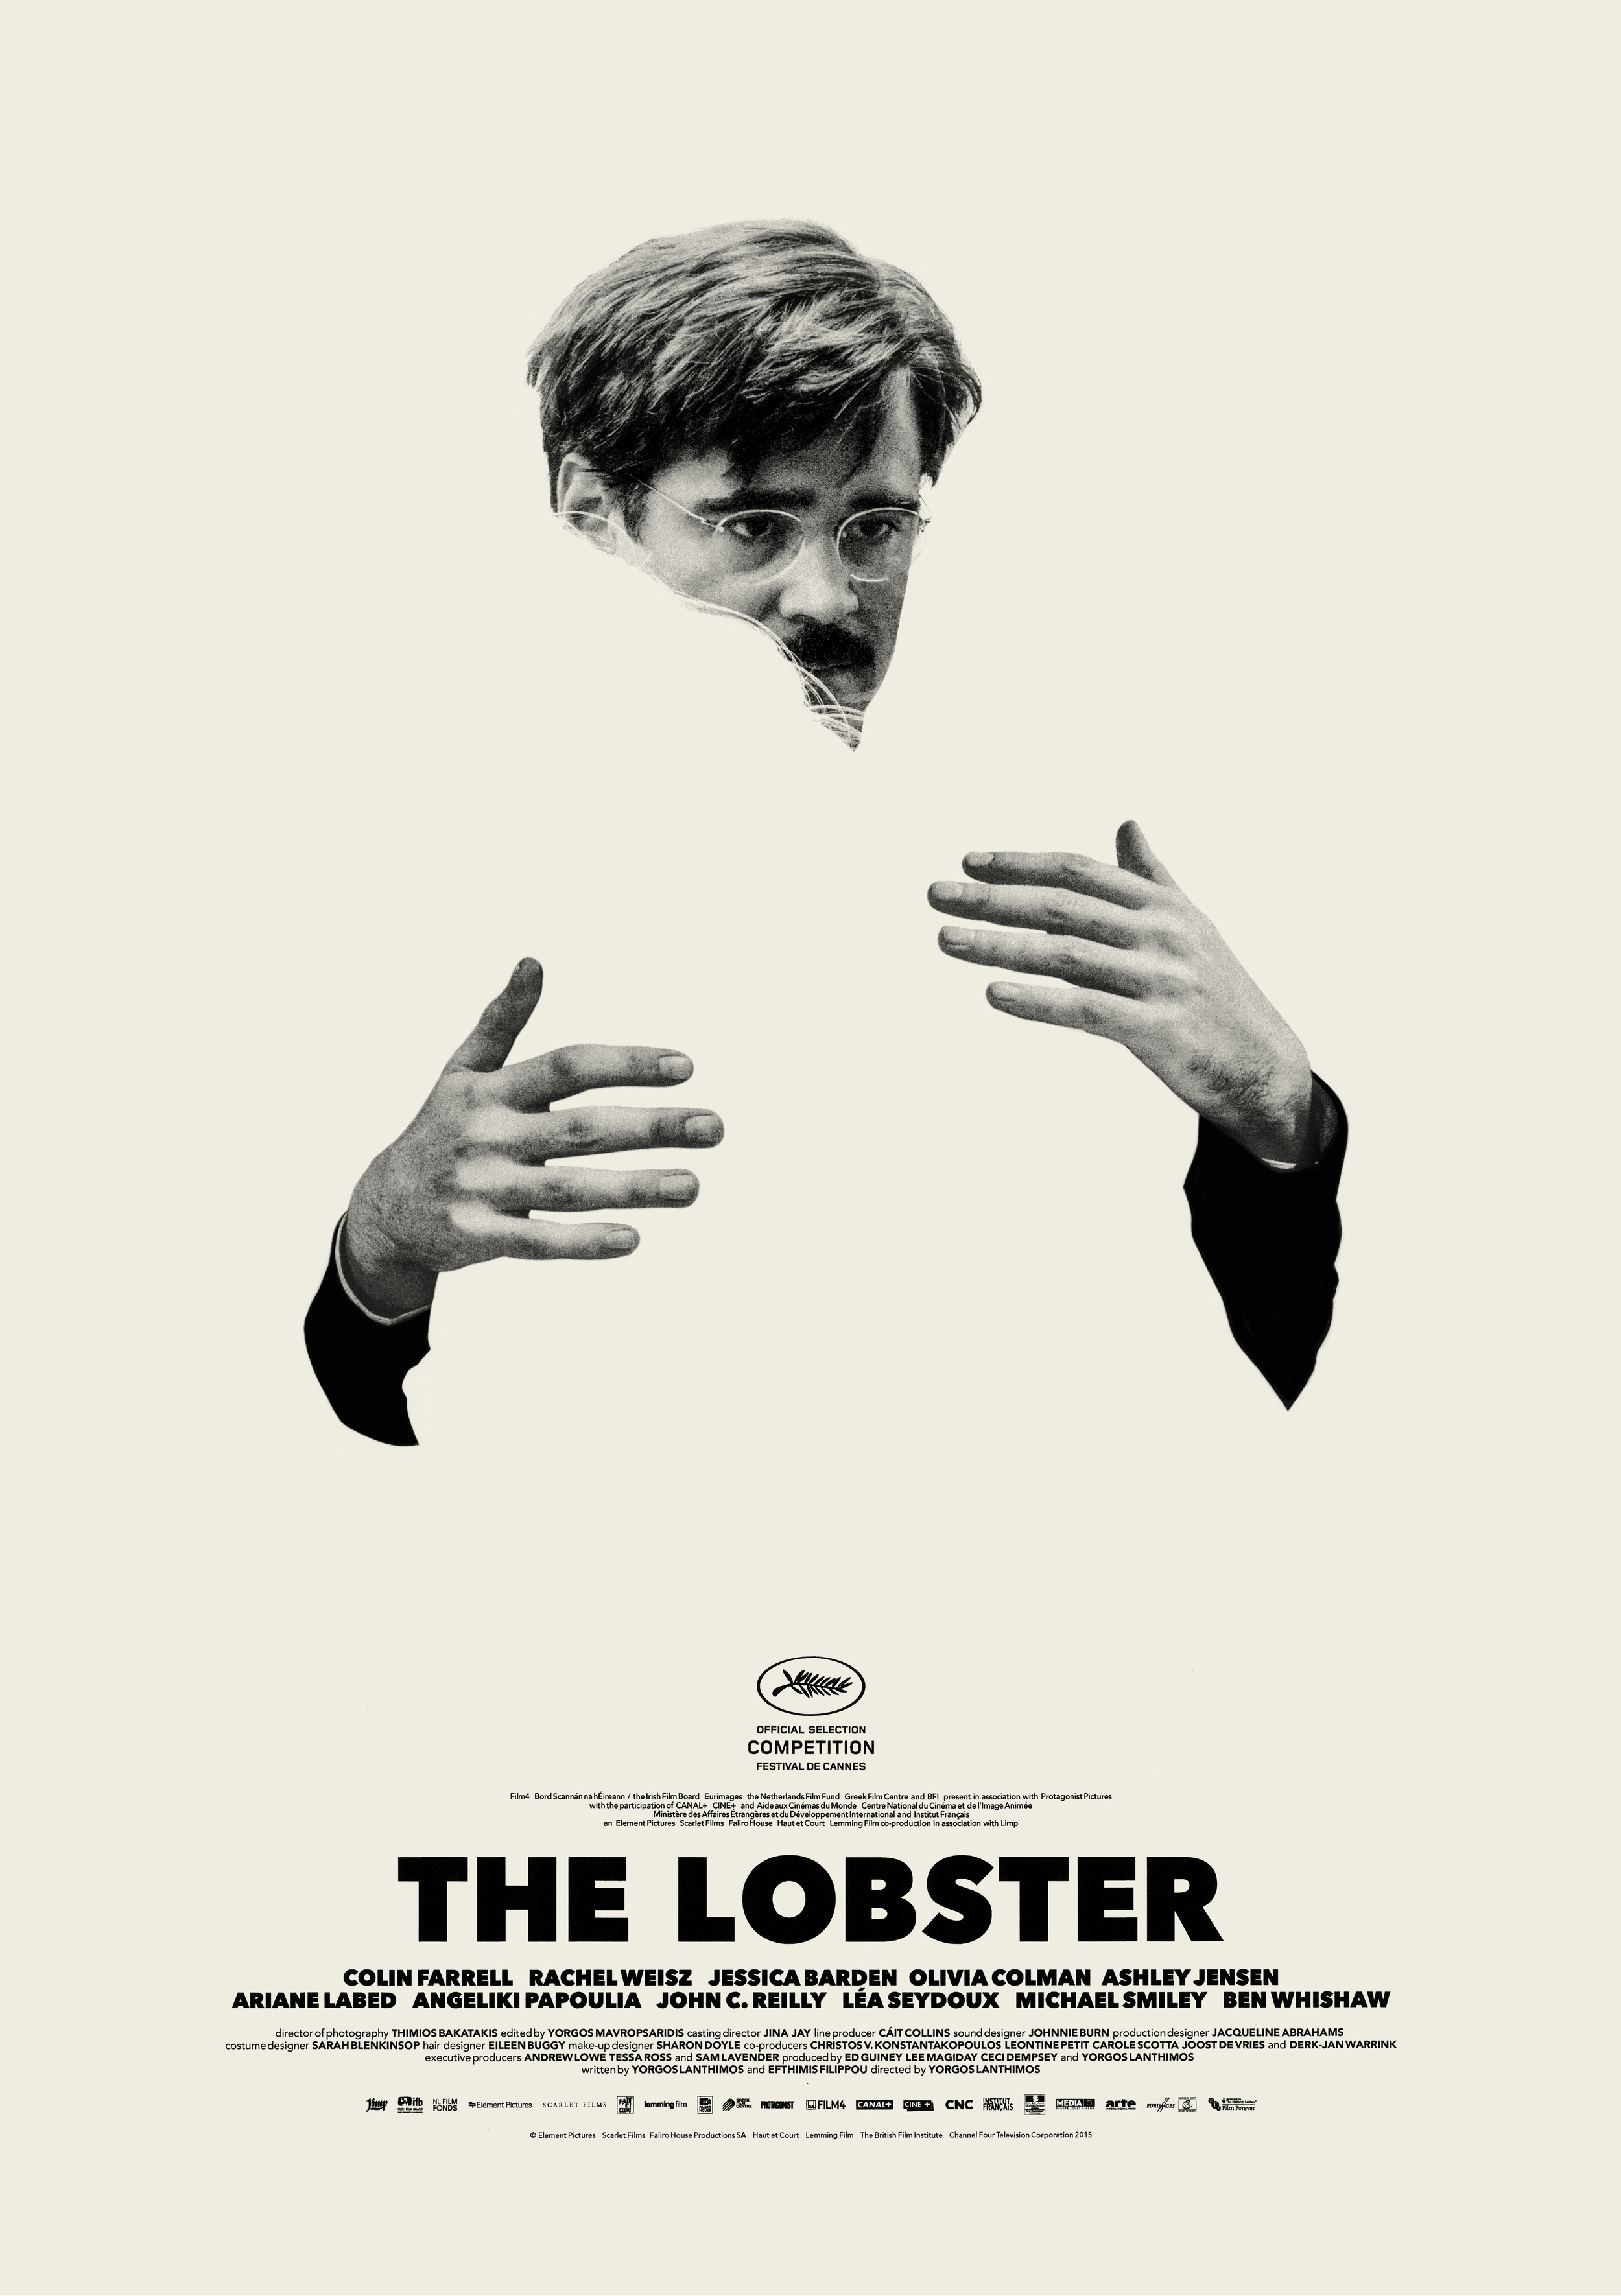 The Lobster 2015 poster Colin Farrell